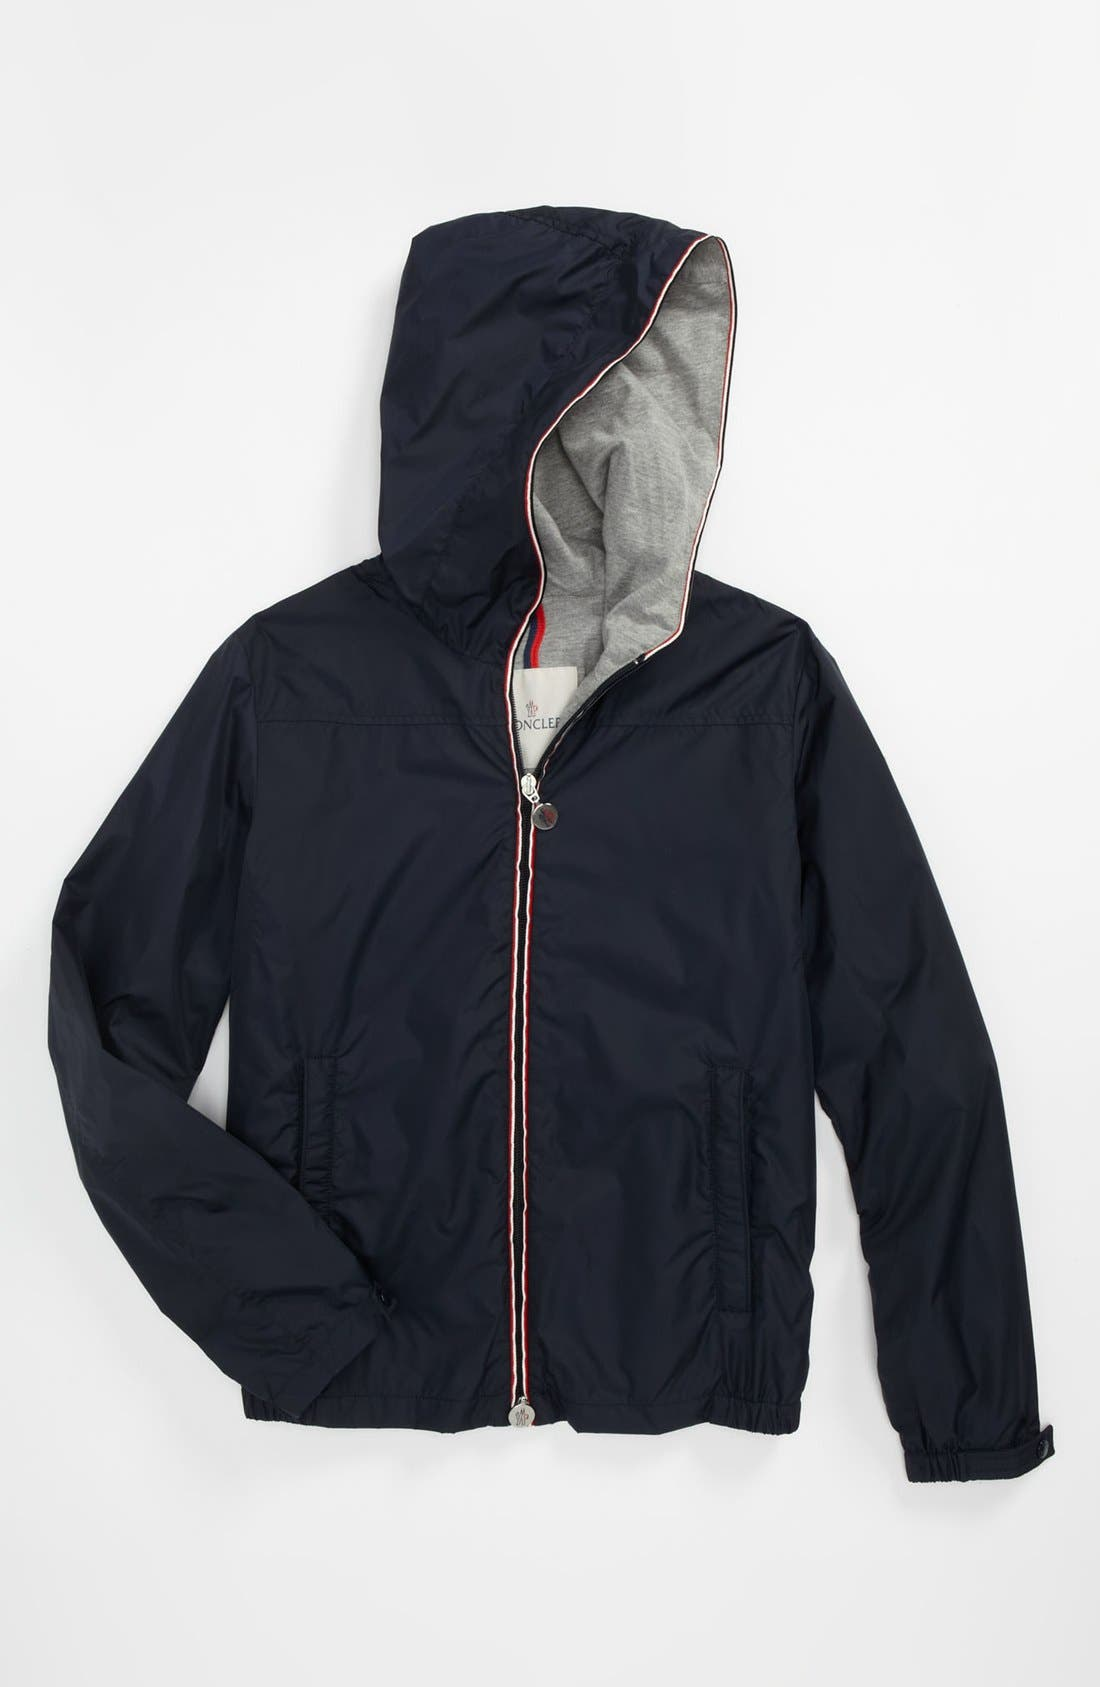 Main Image - Moncler 'Urville' Jacket (Toddler, Little Boys & Big Boys)